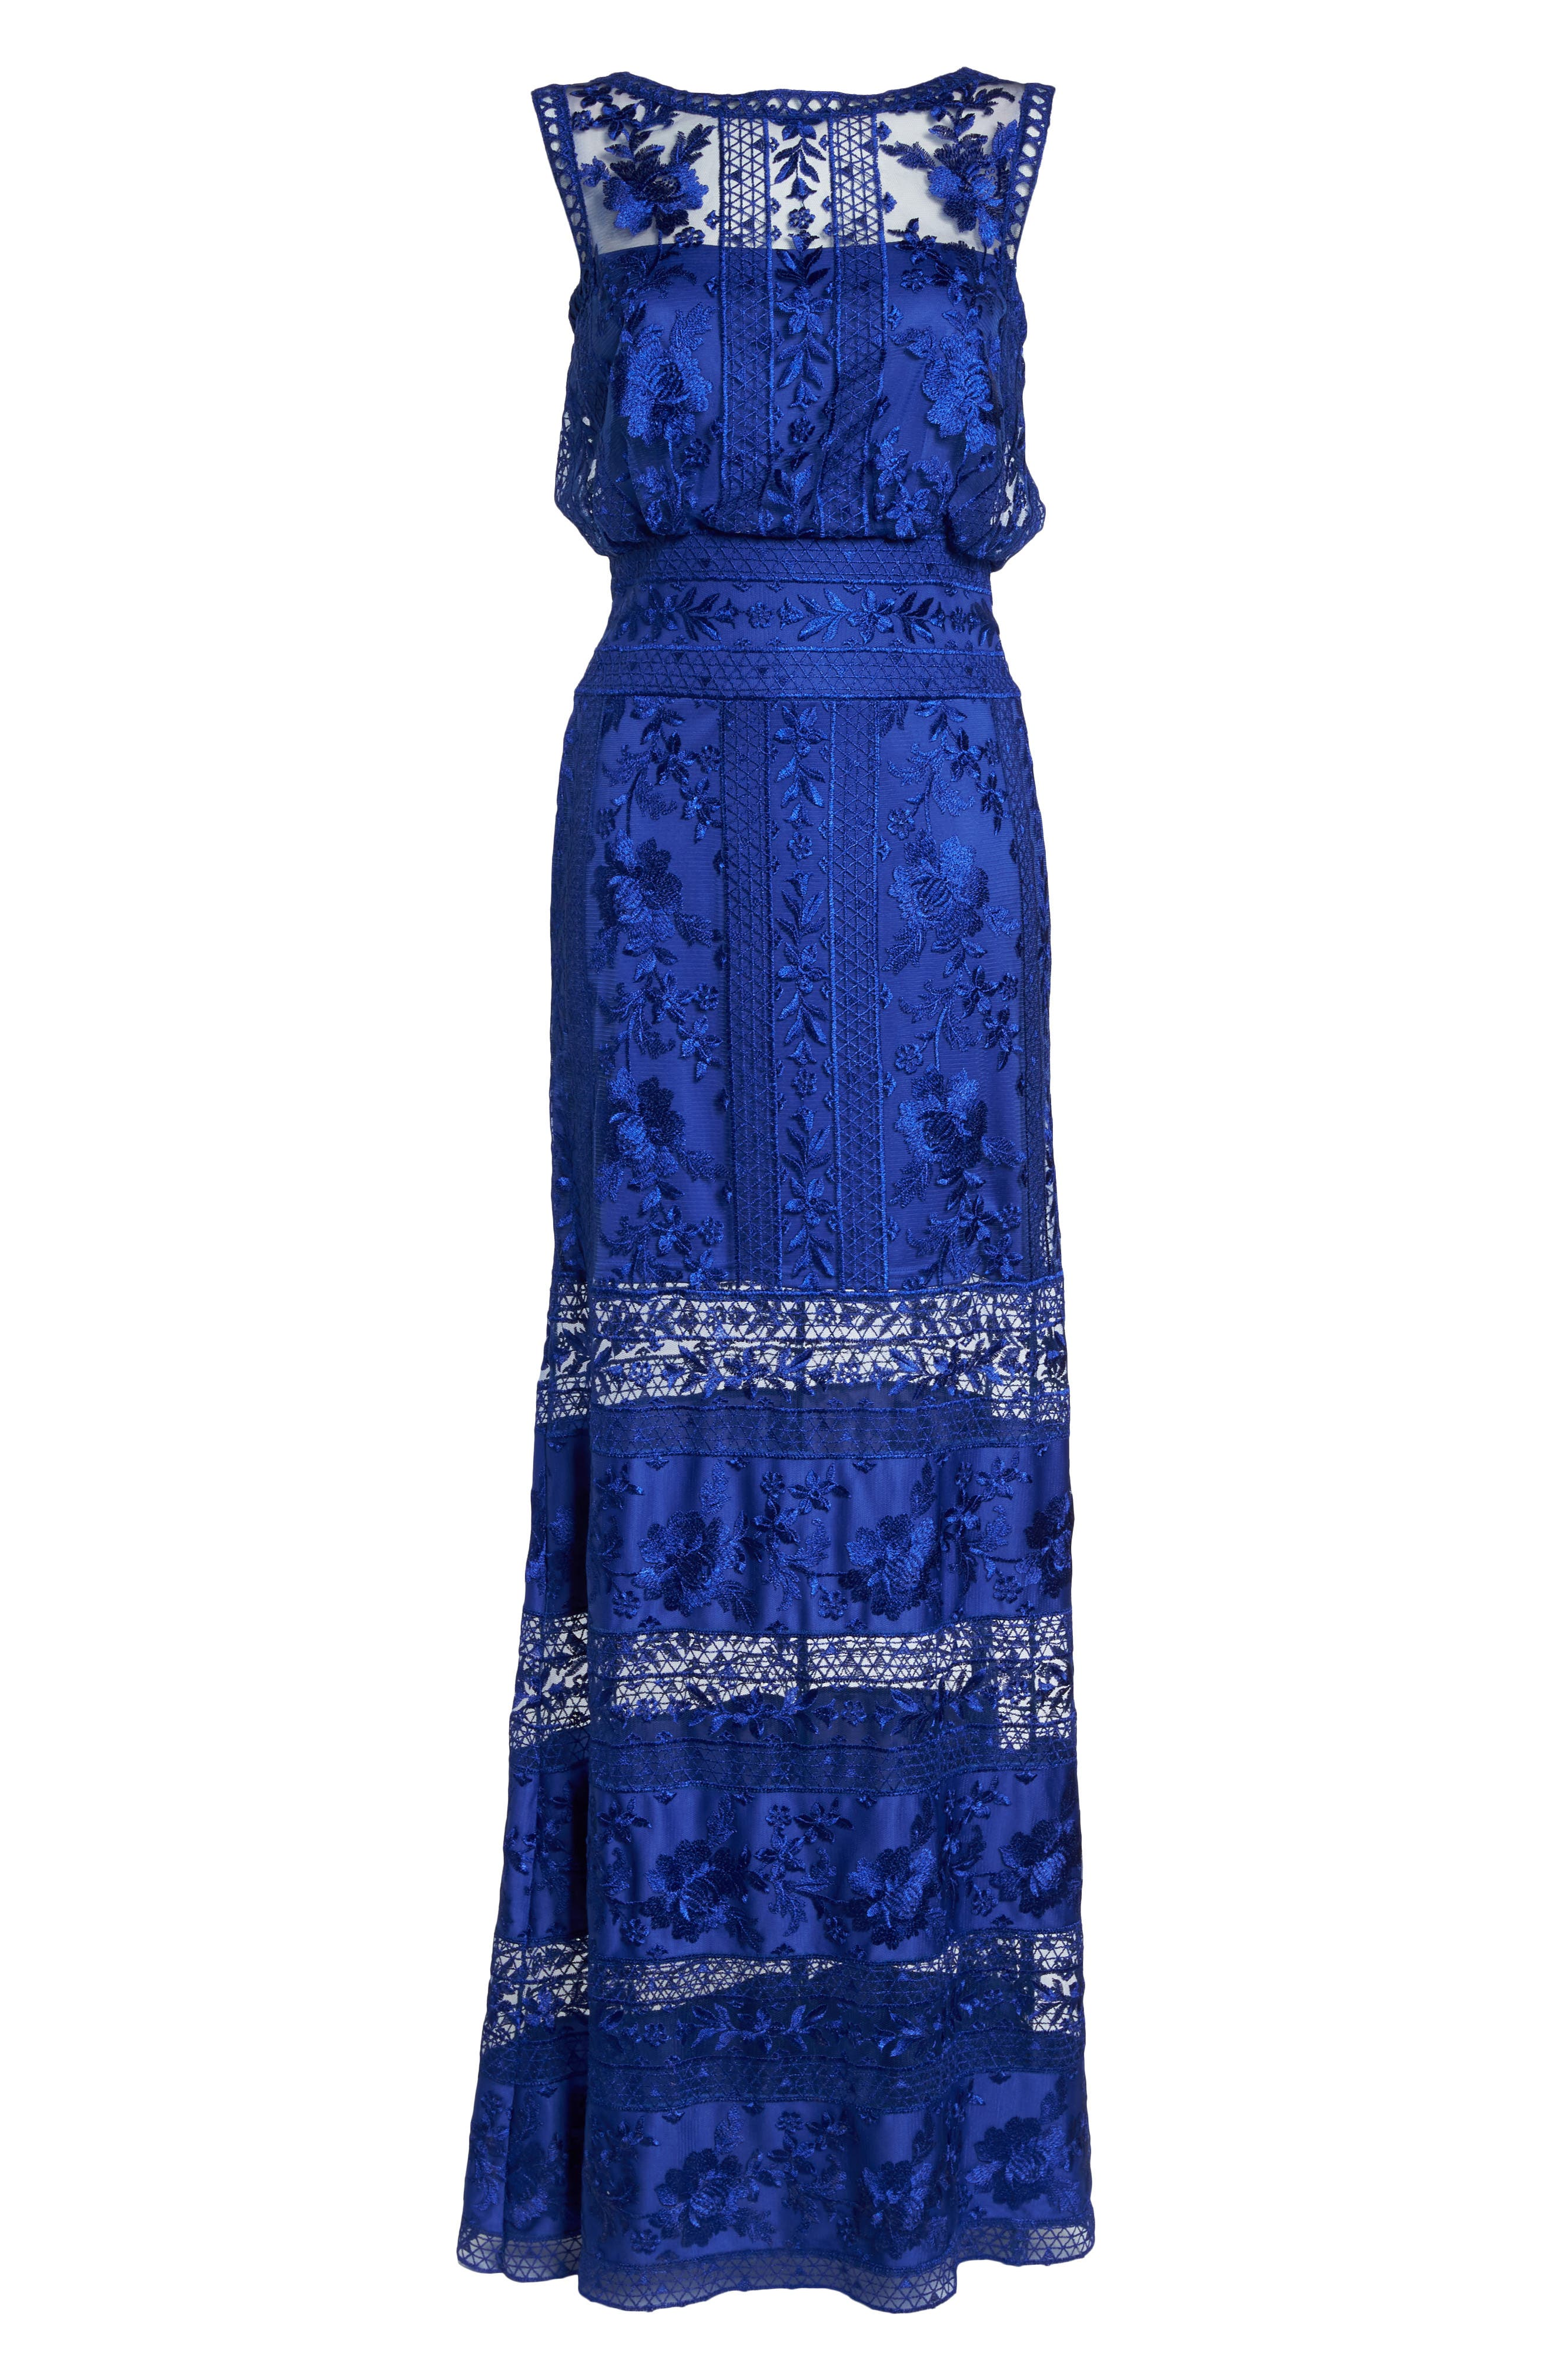 Kaisra Embroidered Lace Gown,                             Alternate thumbnail 6, color,                             400